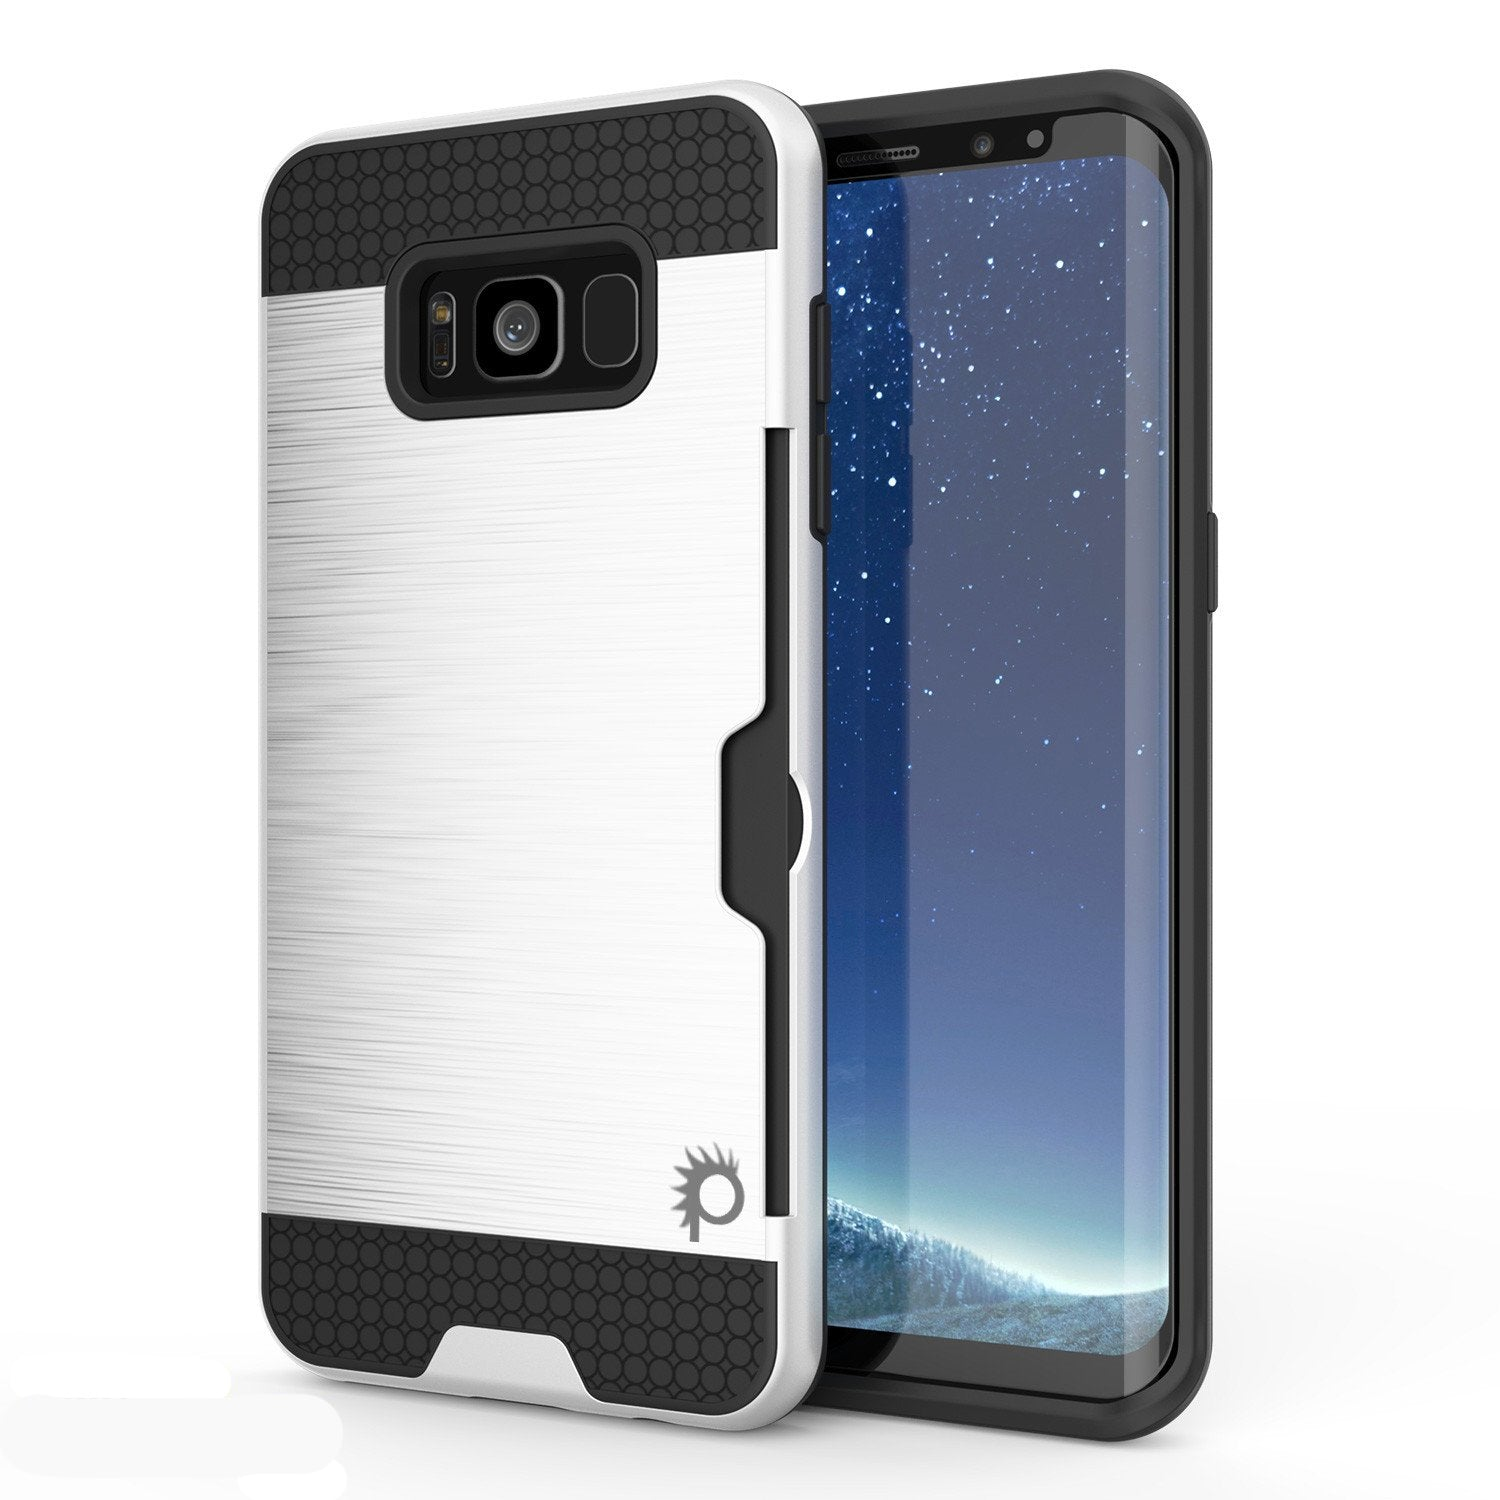 Galaxy S8 Plus Case, PUNKcase [SLOT Series] [Slim Fit] Dual-Layer Armor Cover w/Integrated Anti-Shock System, Credit Card Slot [White]